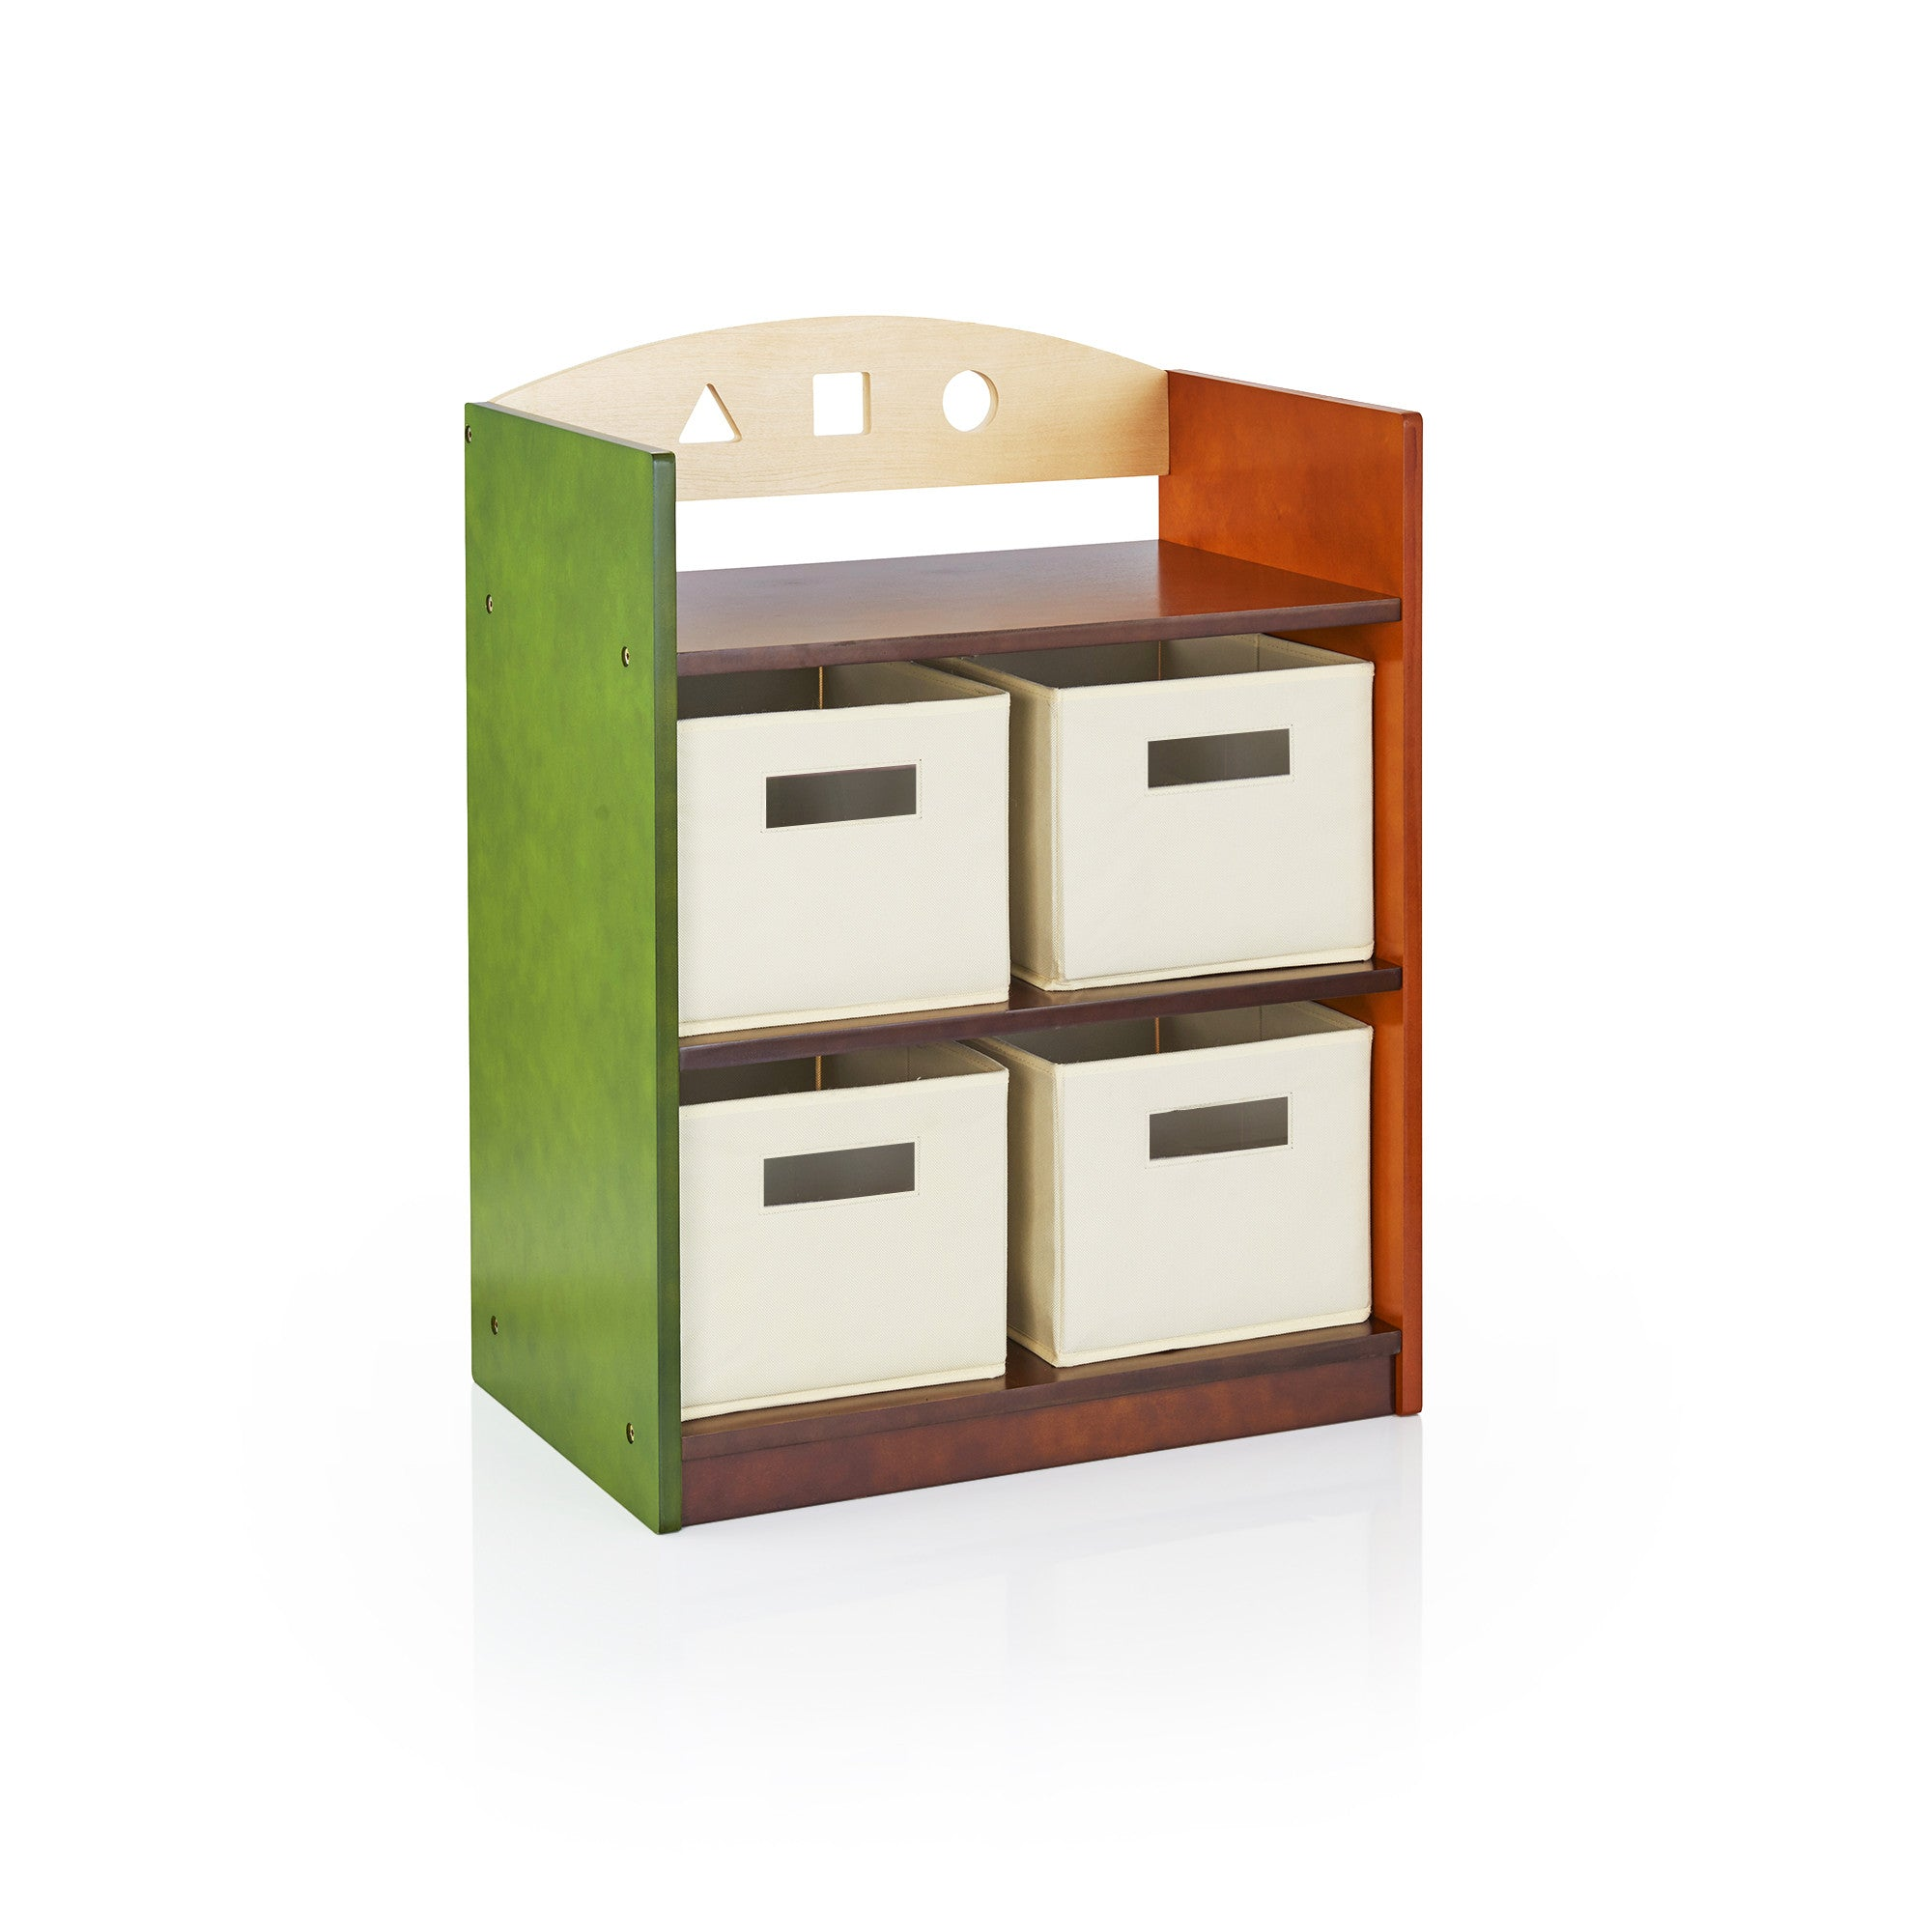 Guidecraft See and Store Bookshelf G98300